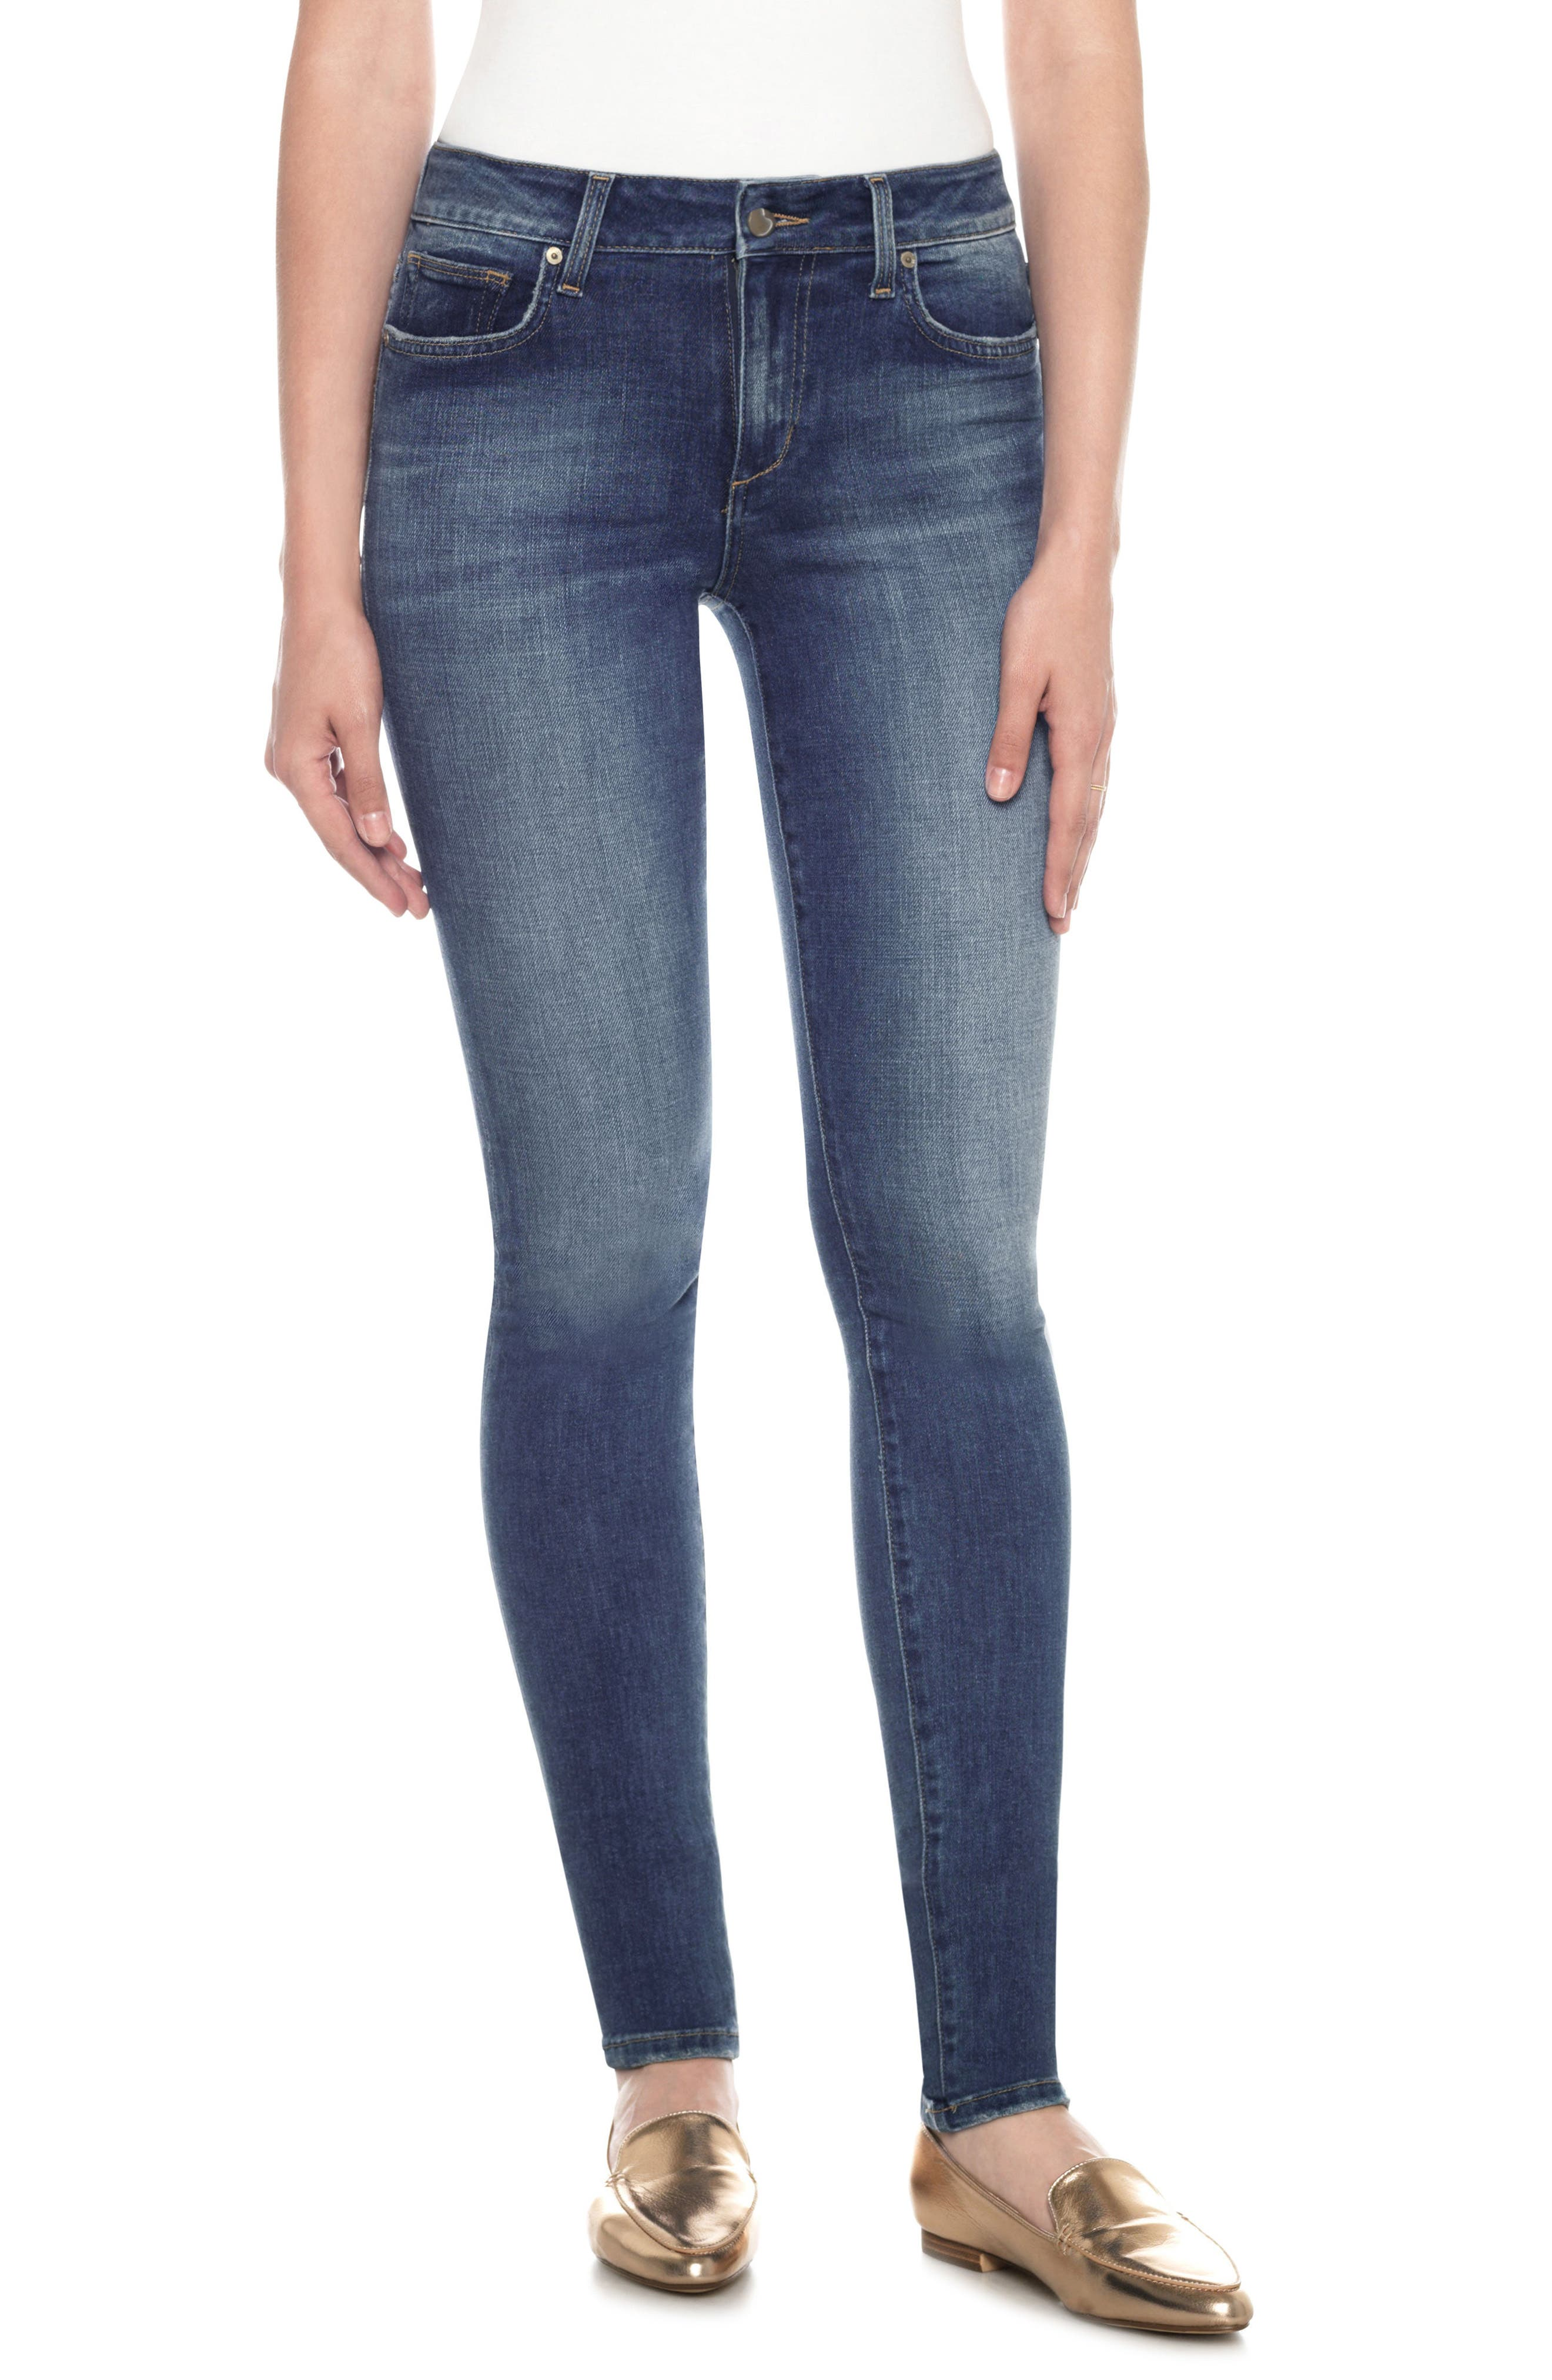 Twiggy Skinny Jeans,                             Main thumbnail 1, color,                             Kinney